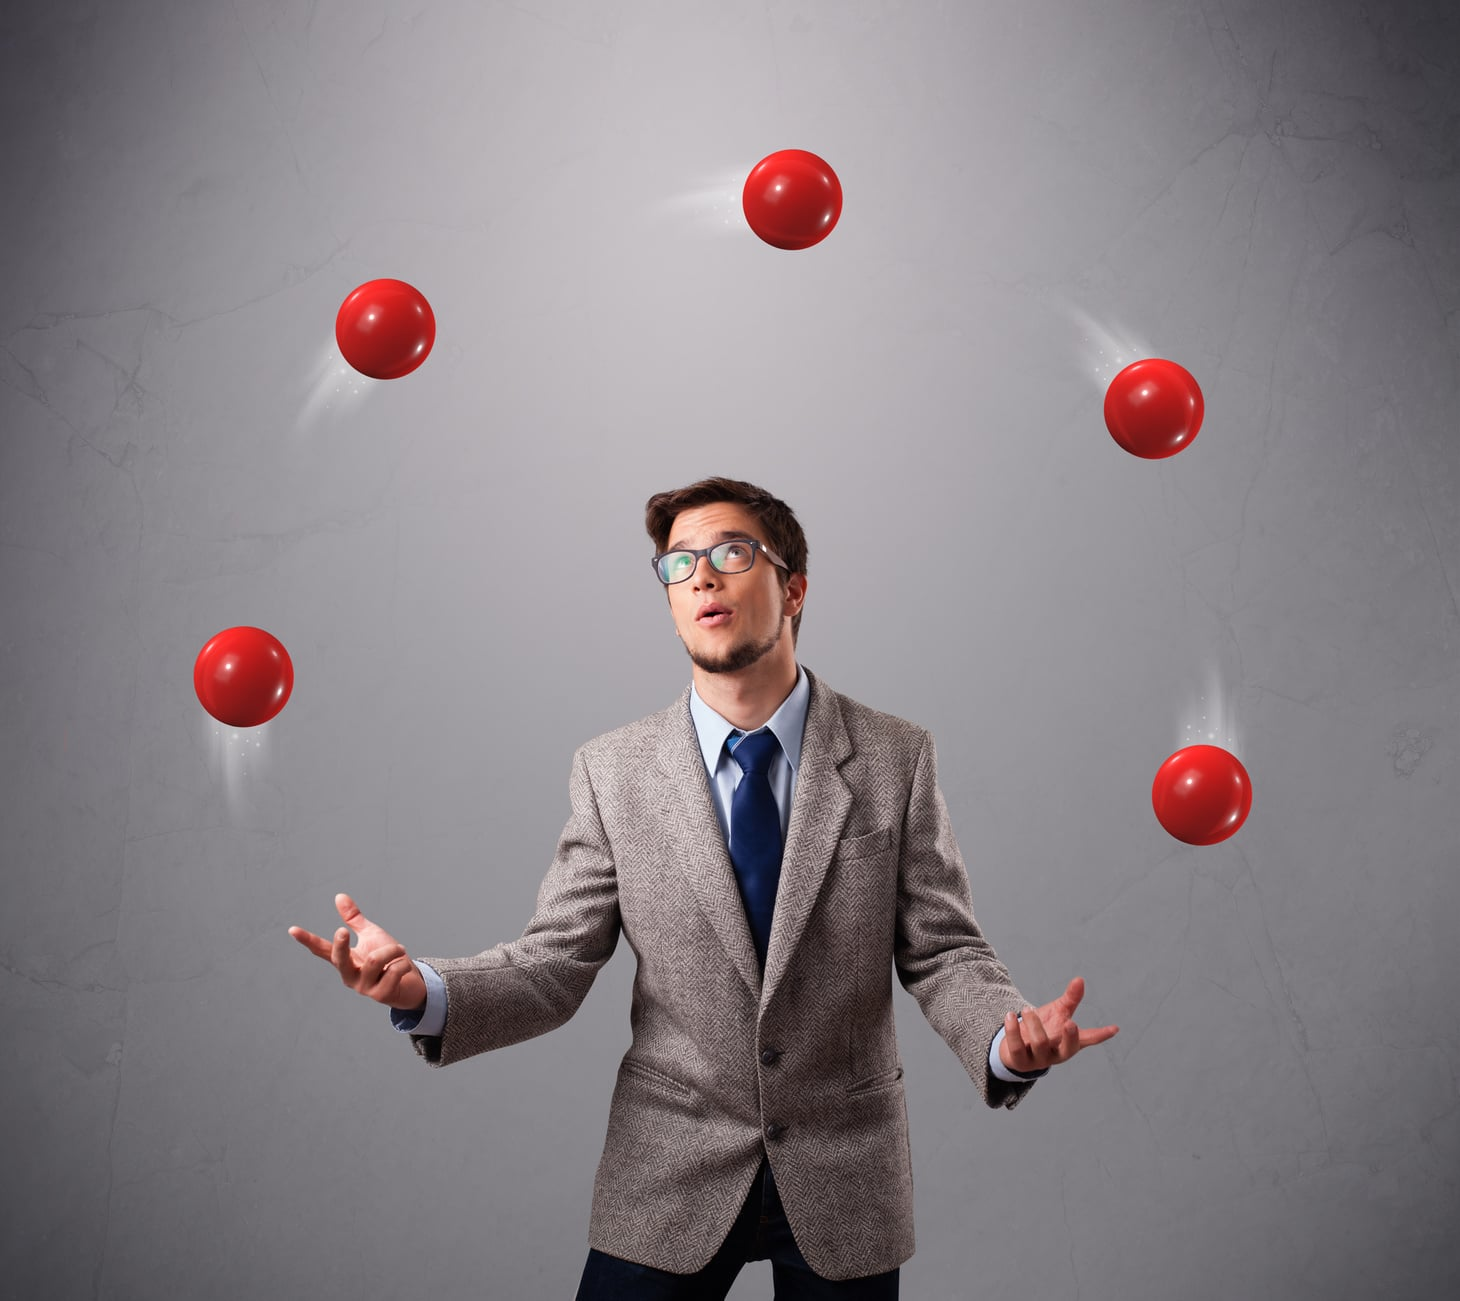 """Foto: """"young man standing and juggling with red balls"""" 